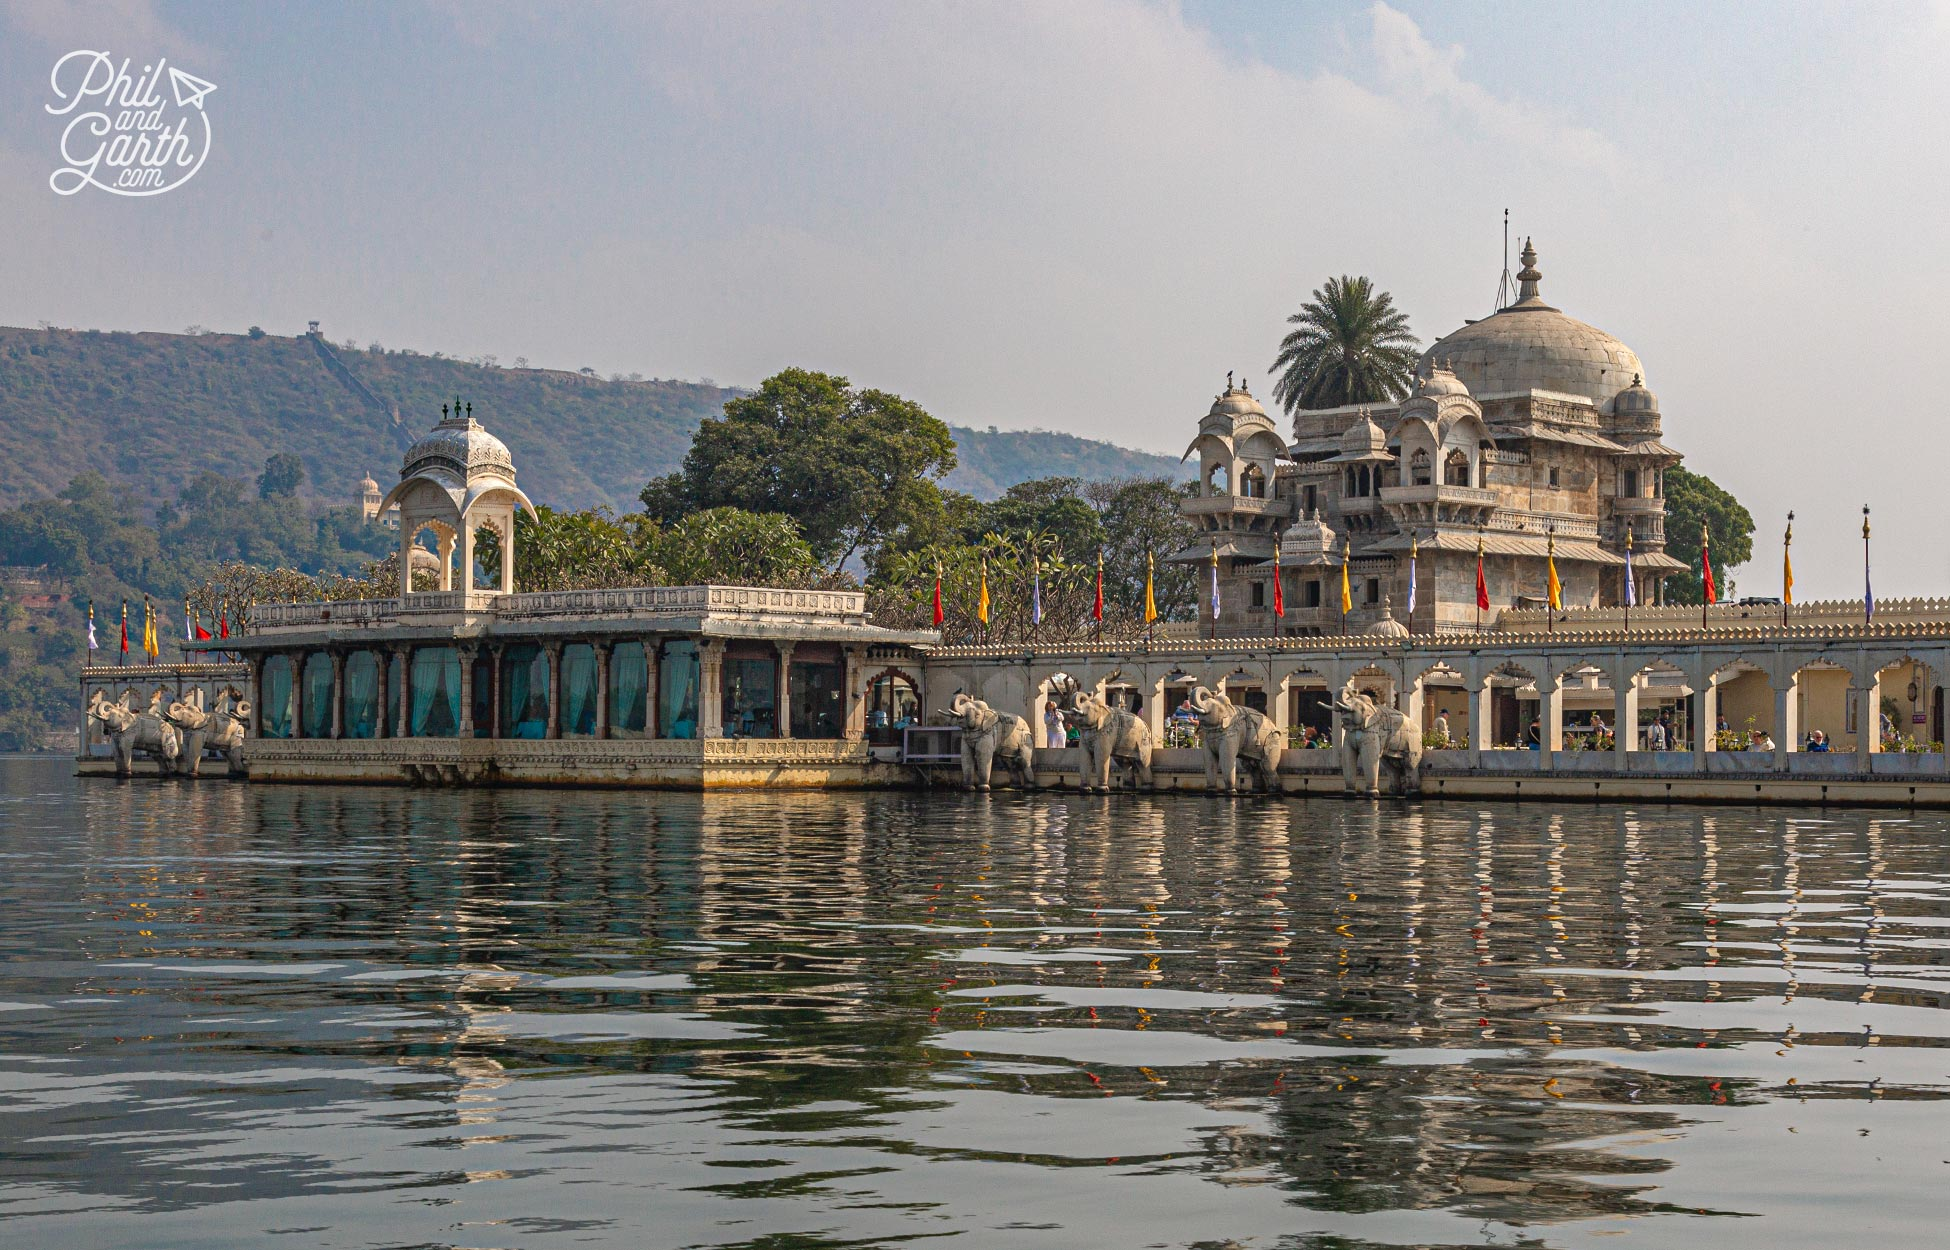 Boat trip on Lake Pichola to the Jagmandir Palace, now a hotel